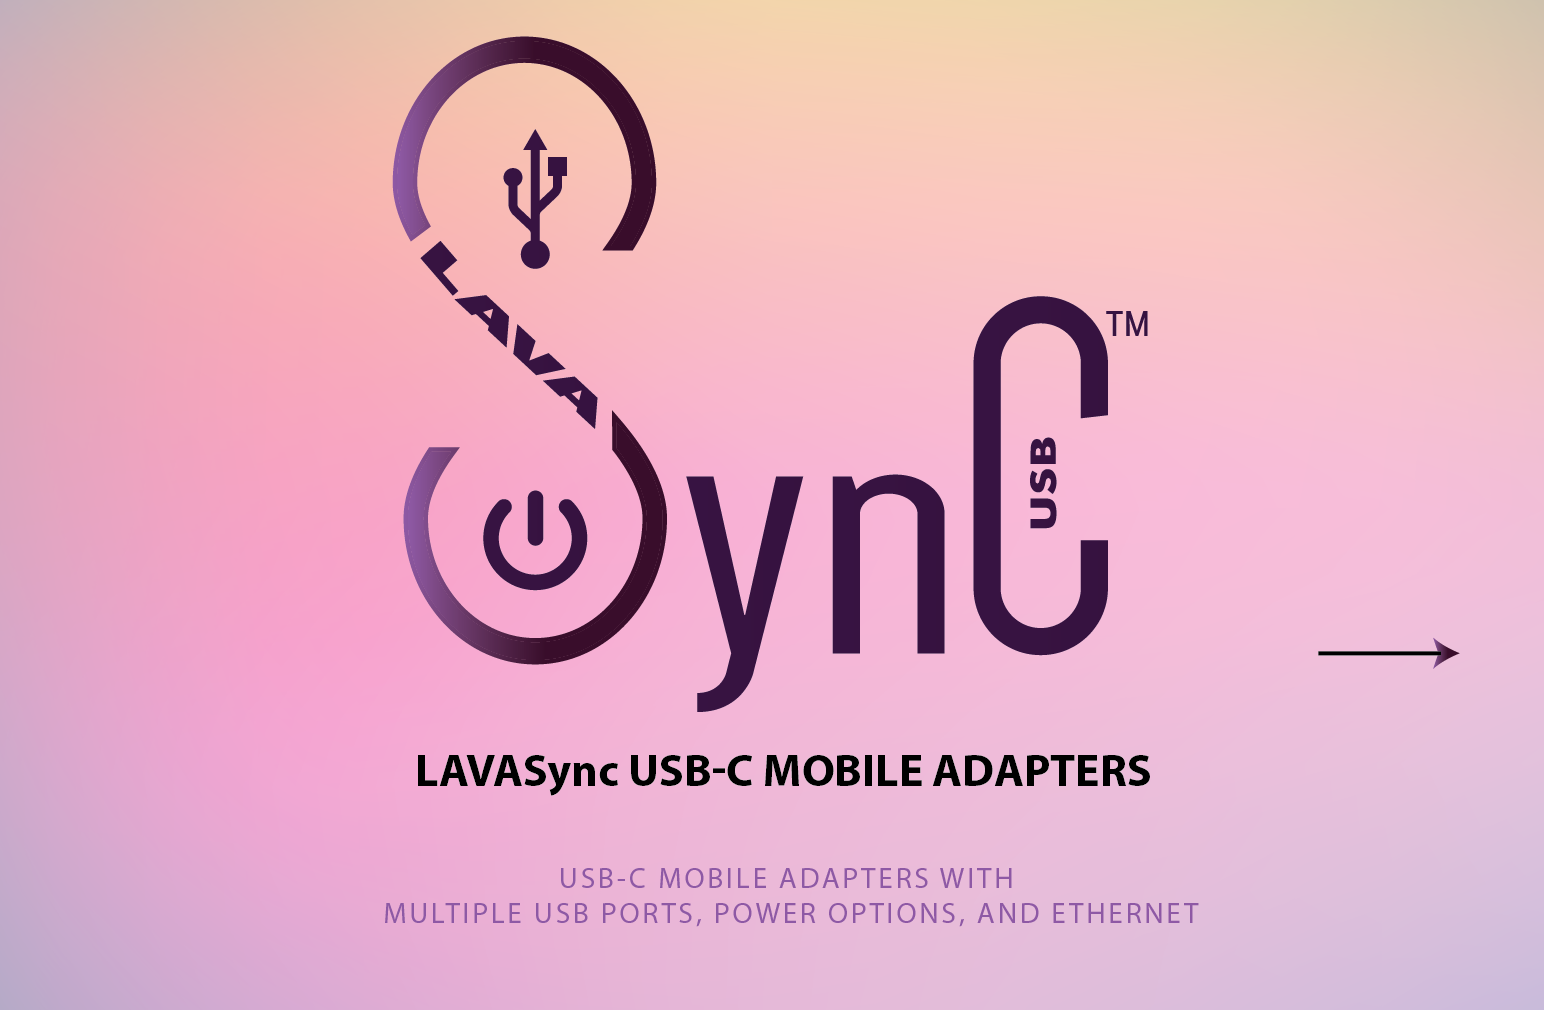 LAVASync USB-C Mobile Adapters